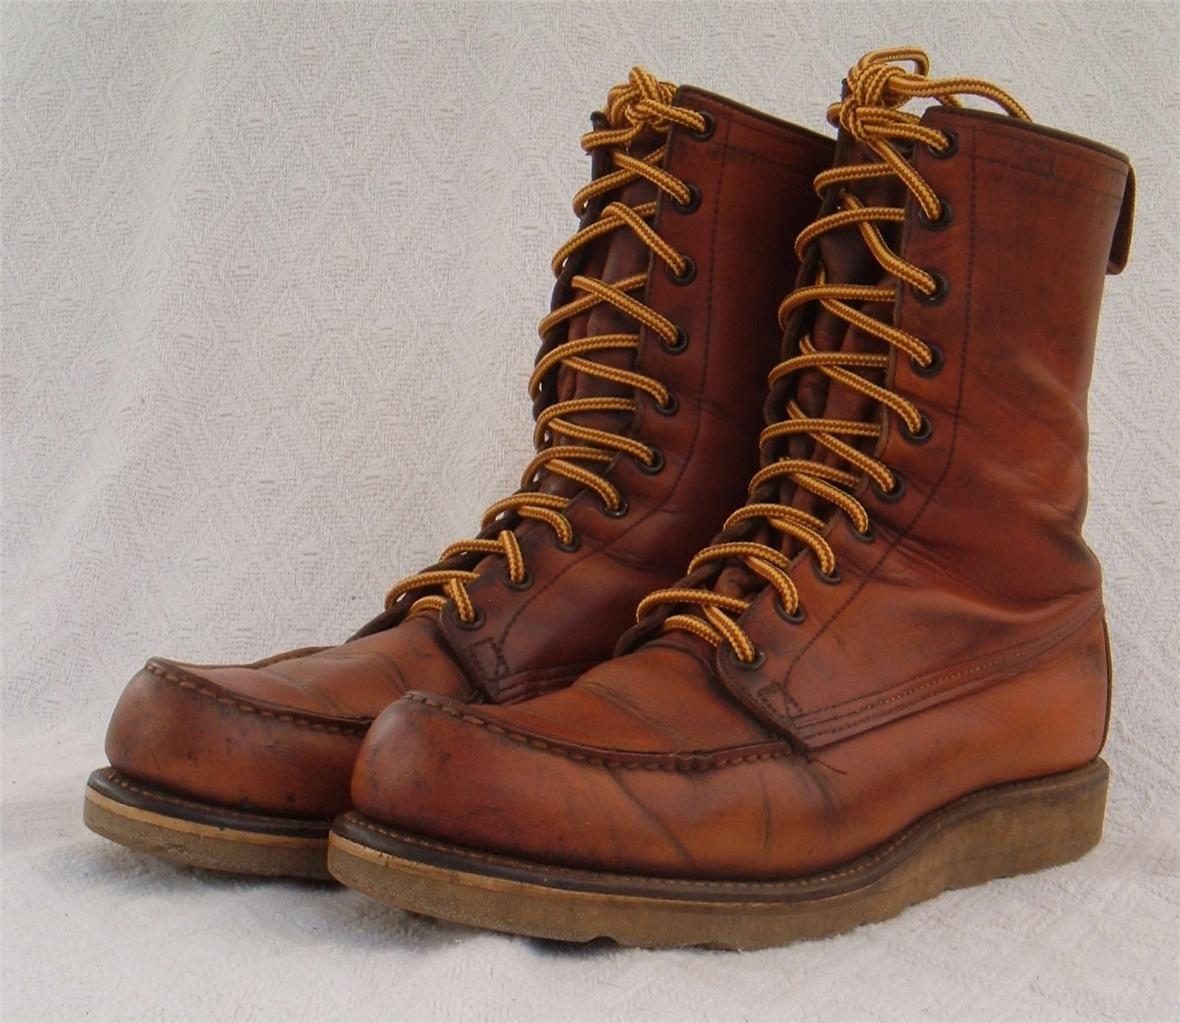 Irish Setter| Hunting and Work Boots | Red Wing Charlottesville